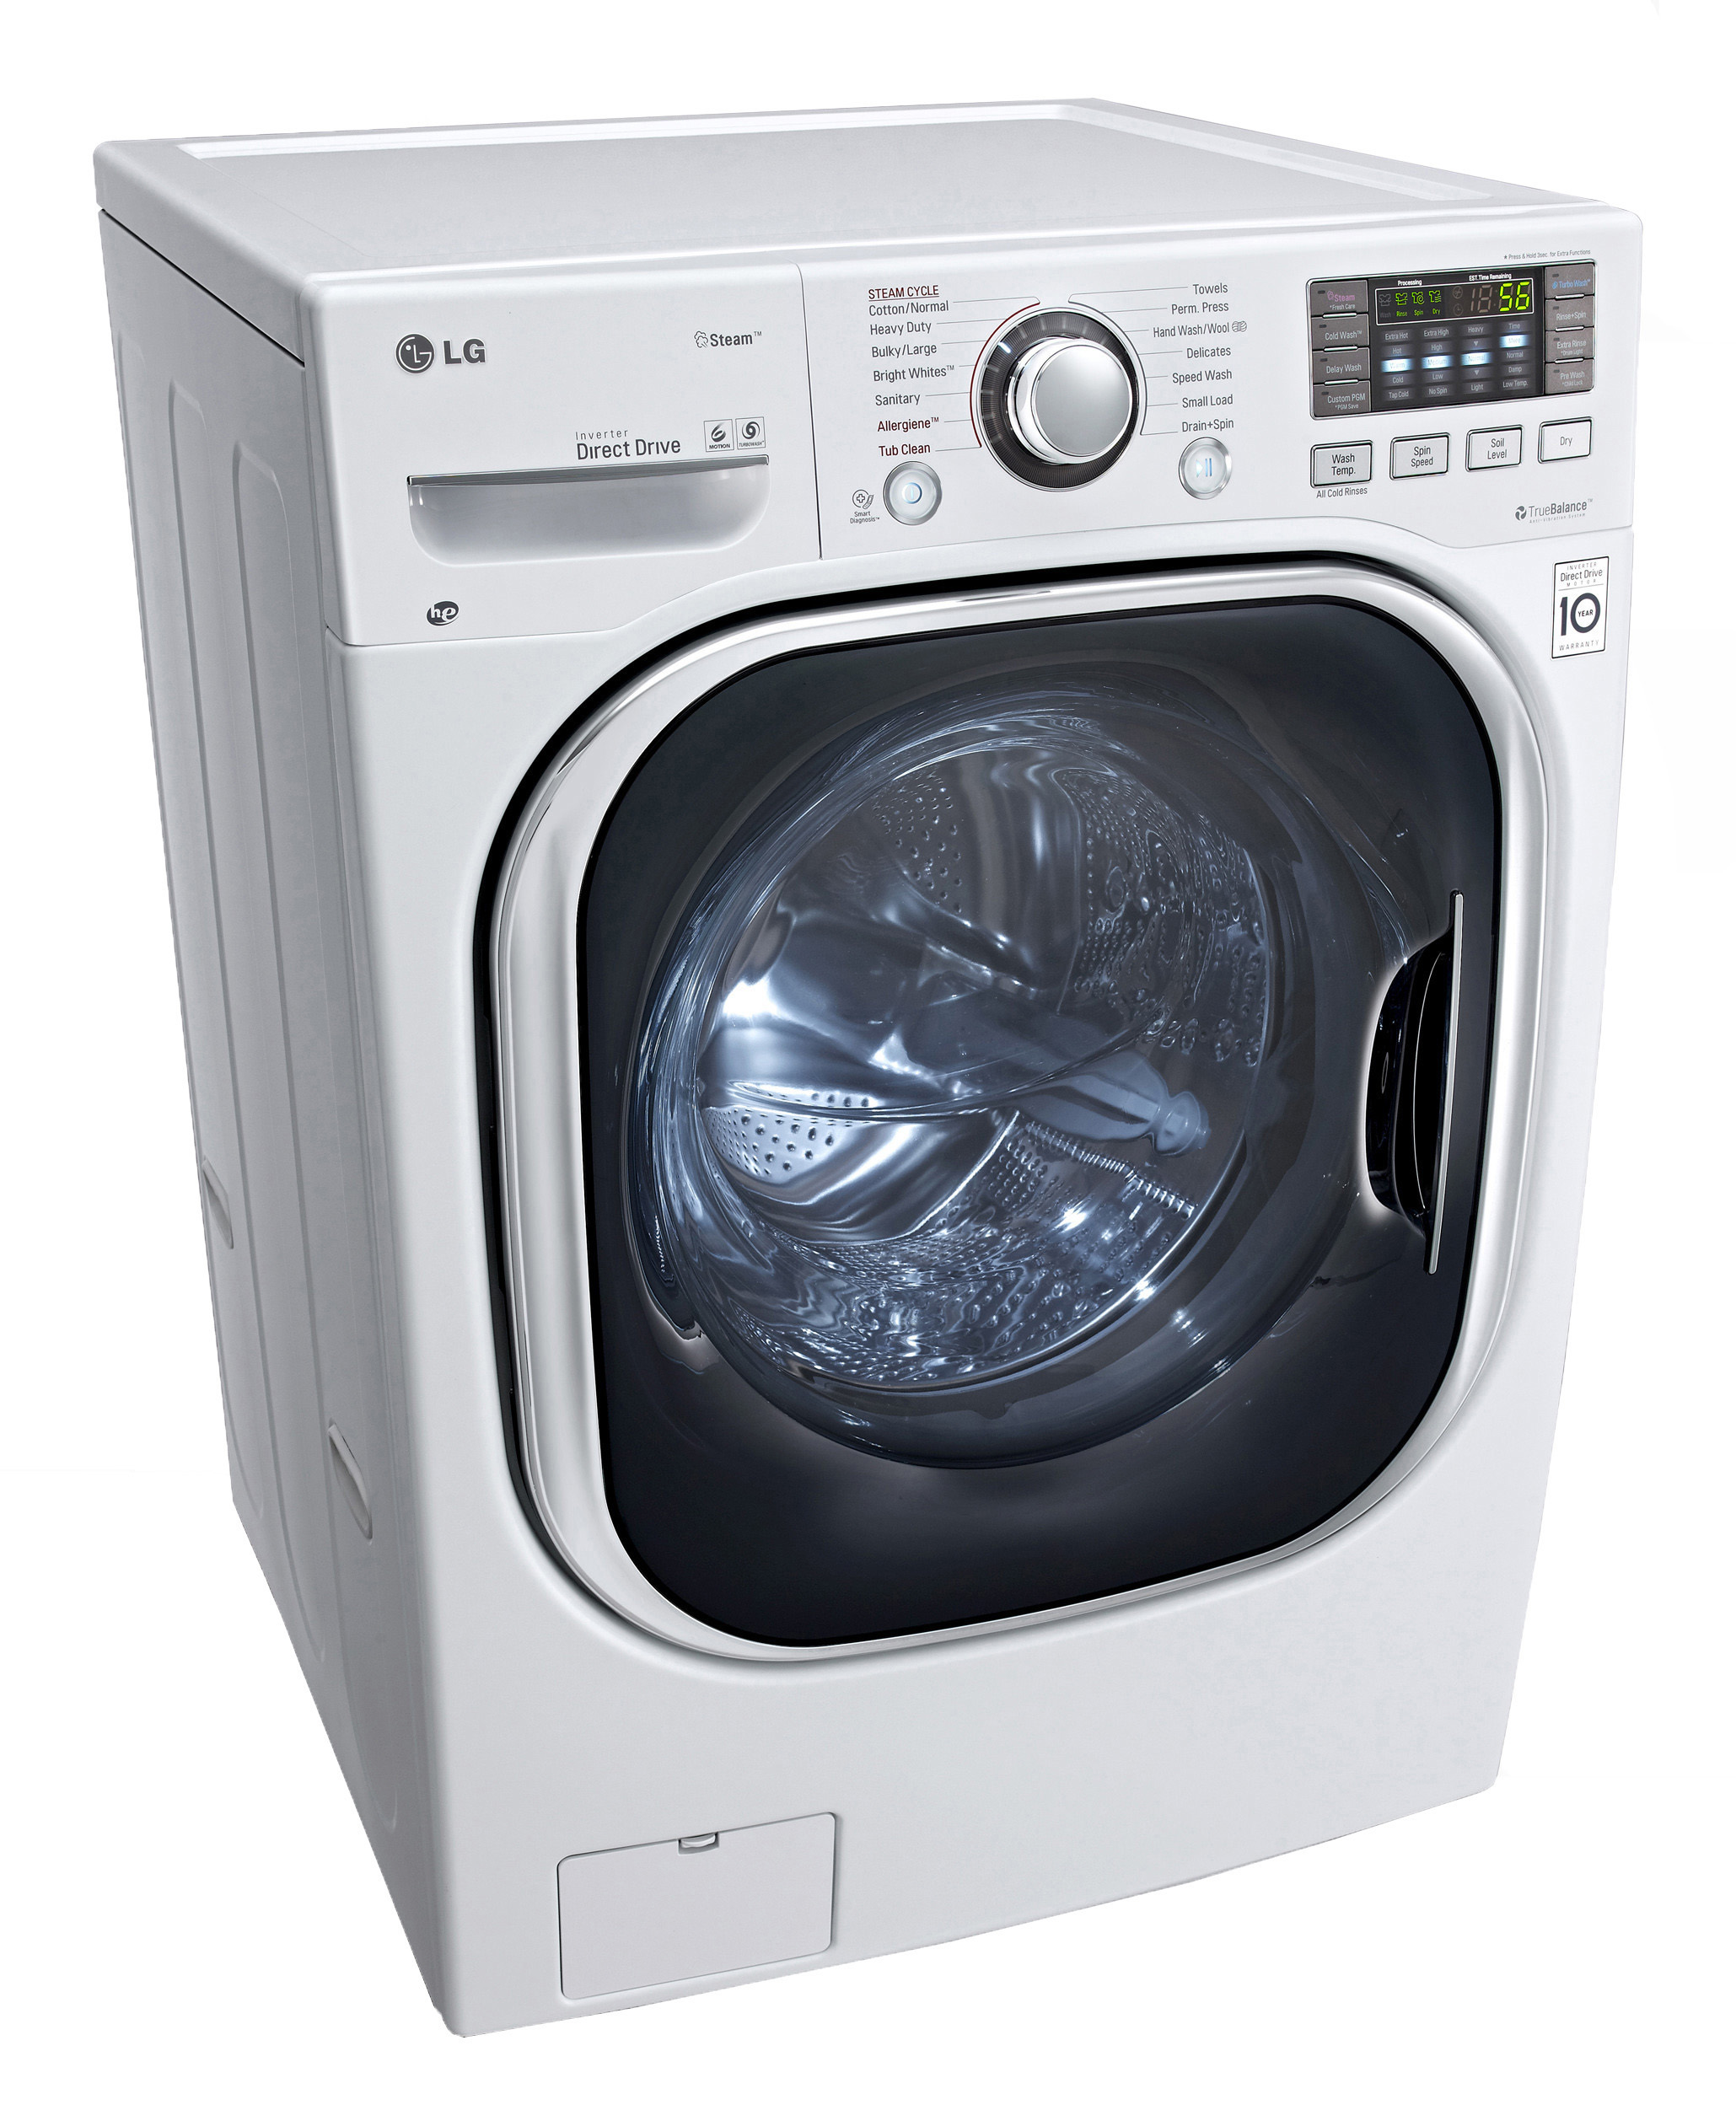 Lg Wm3997hwa Comparison Of Washer Dryer Combos